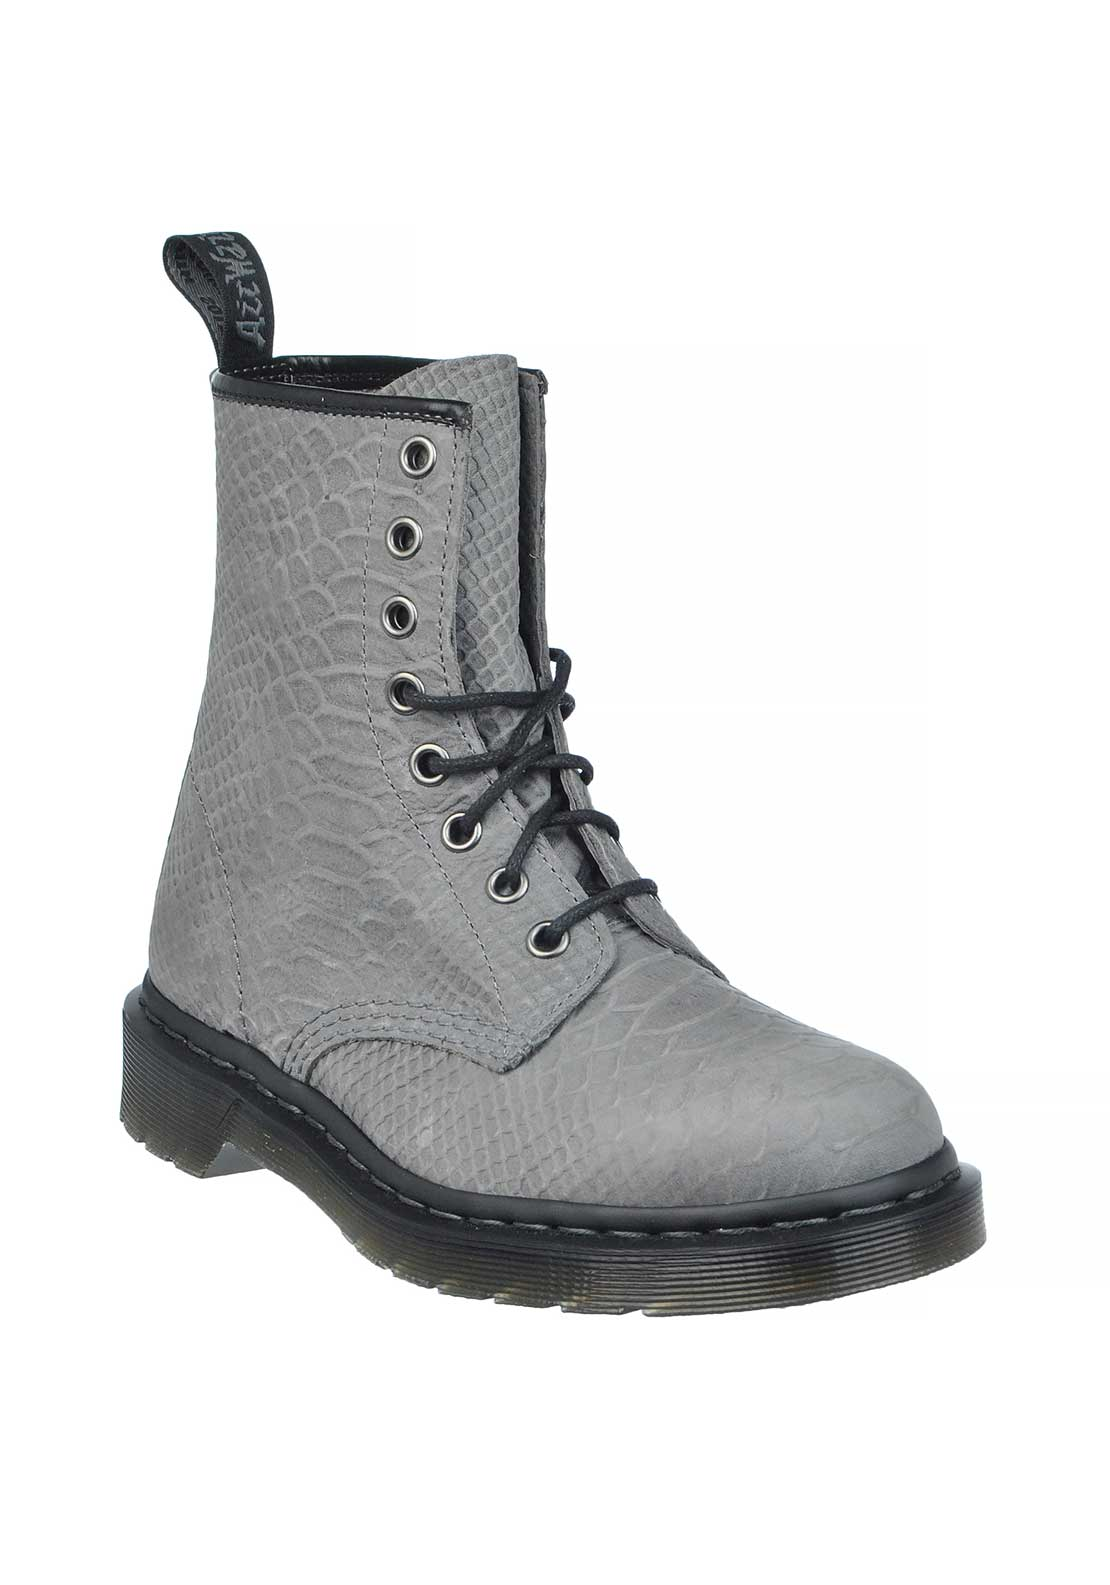 Dr Martens Air Wair Leather Reptile Print Pascal Laced Boots, Python Grey